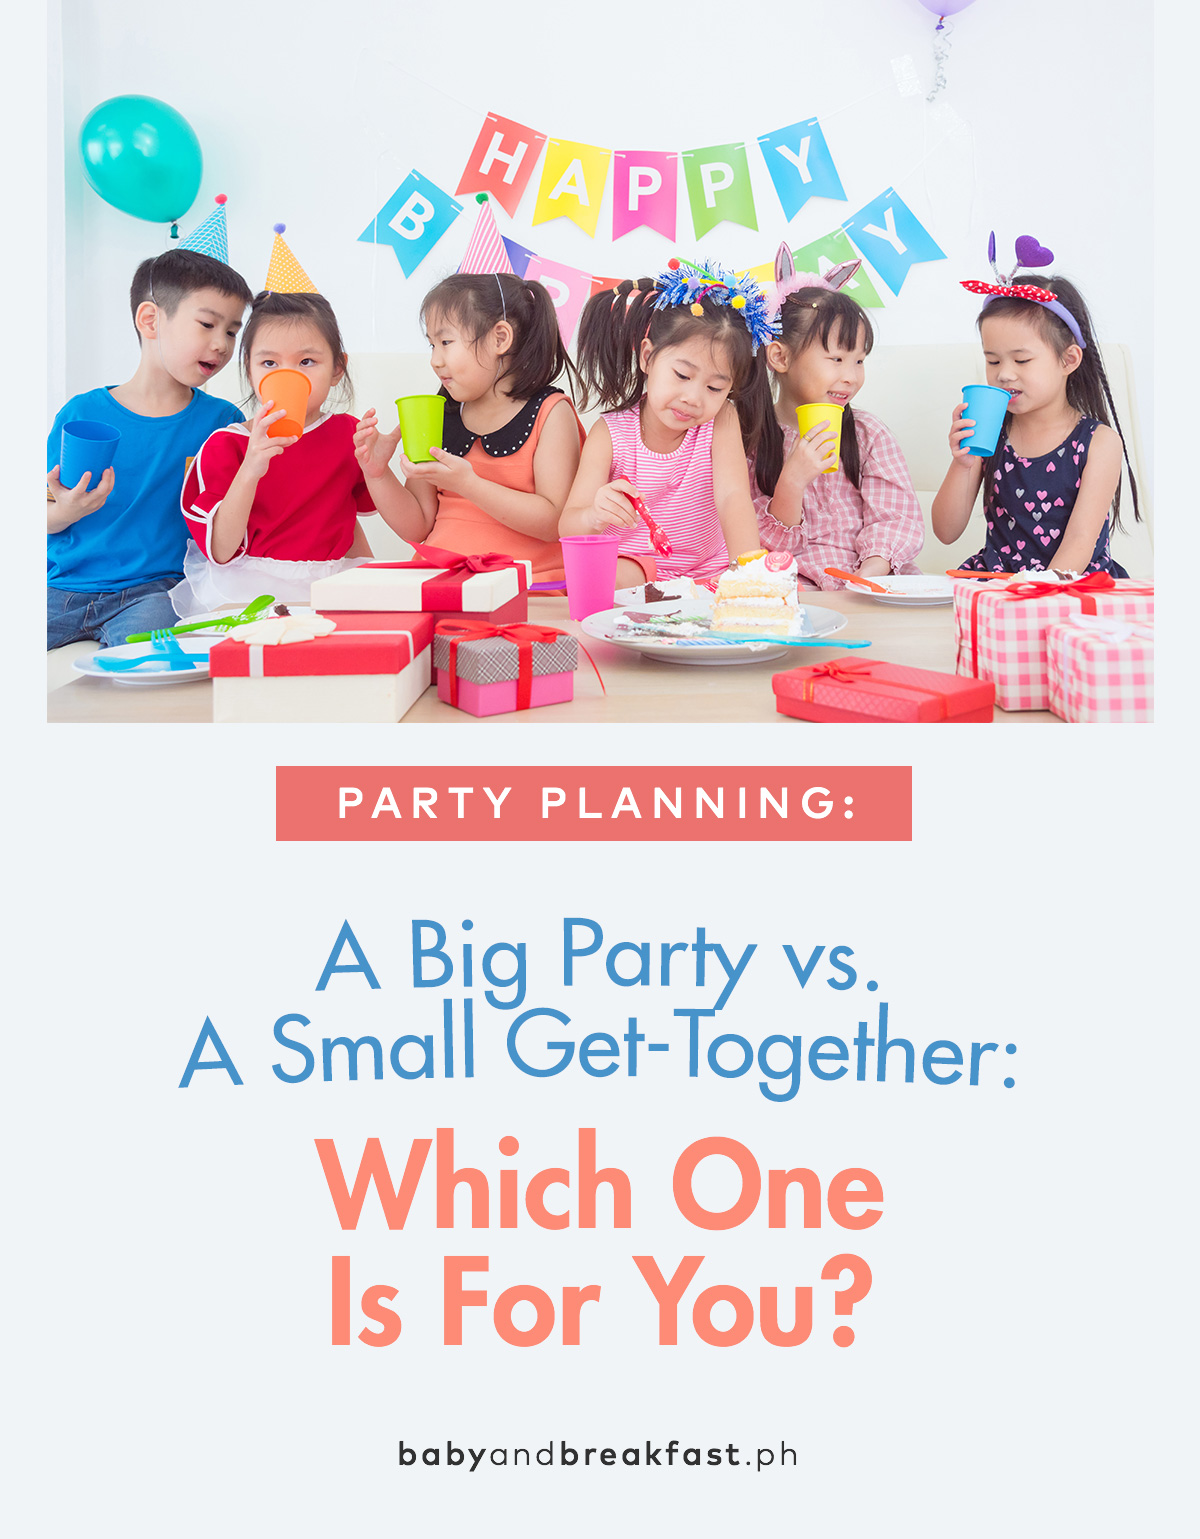 A Big Party vs. A Small Get-Together: Which One Is For You?